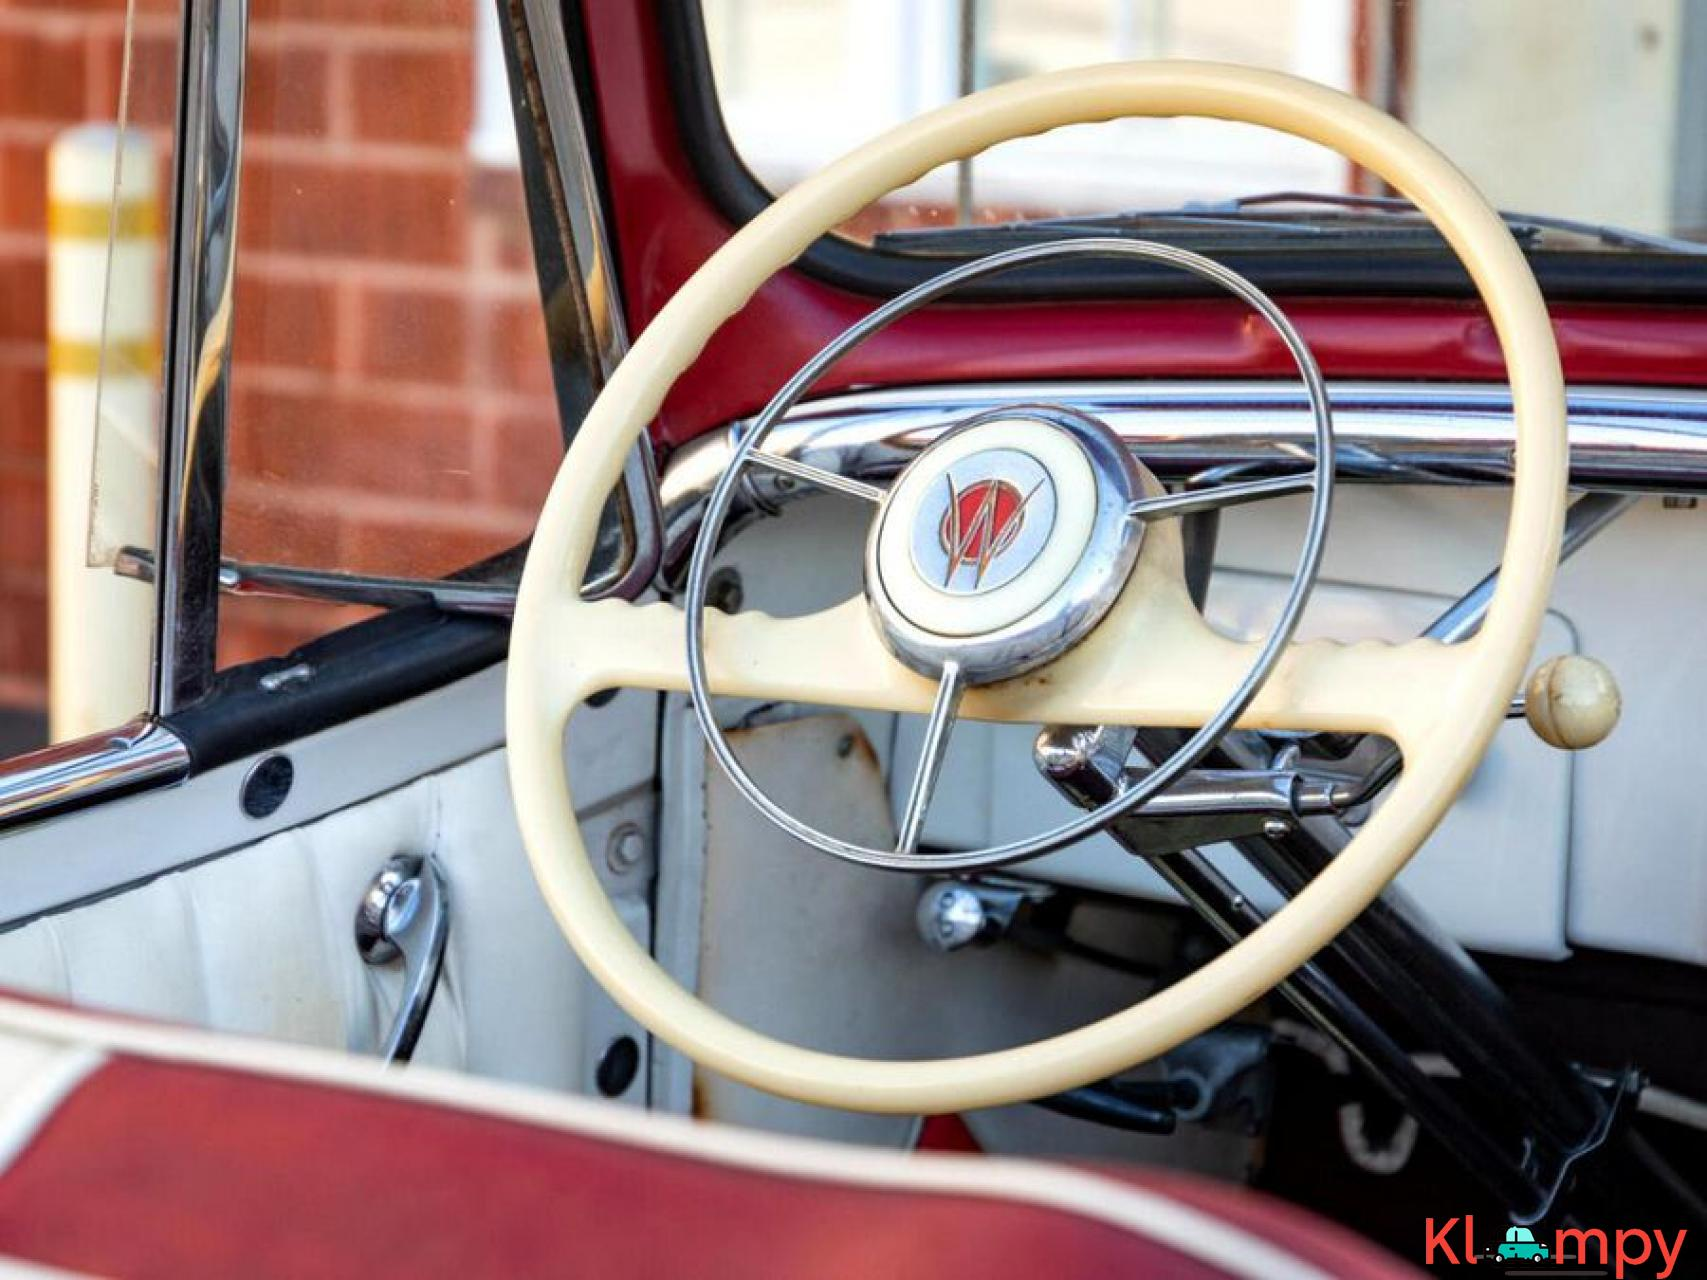 1951 Willys Jeepster Convertible 134.2 cu in 2.2 L - 12/17